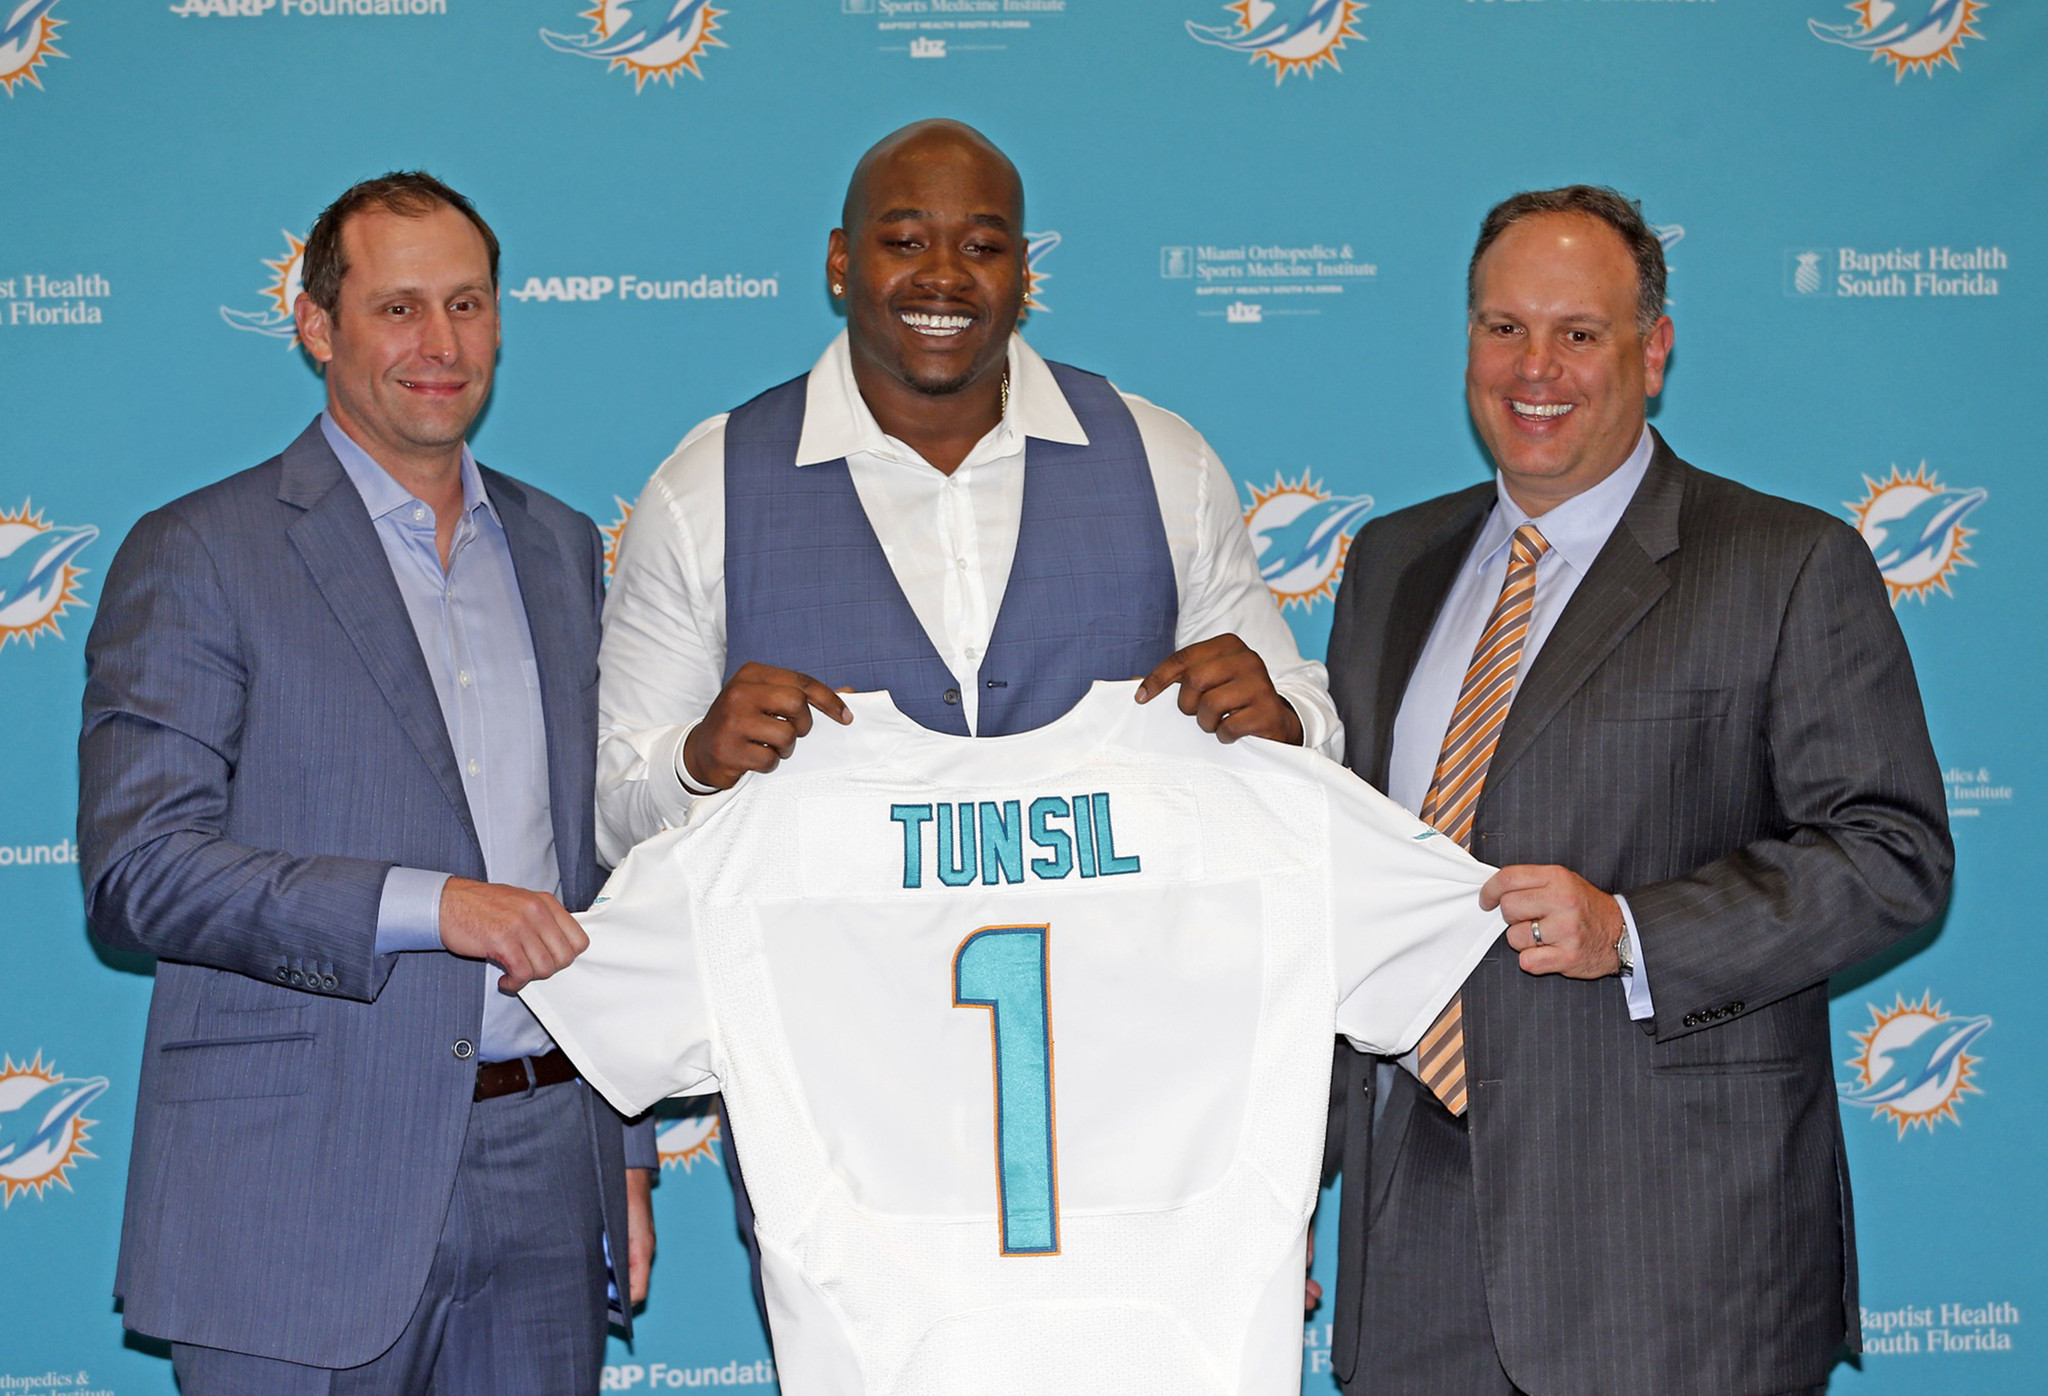 Sfl-report-tunsil-text-messages-with-ole-miss-personnel-have-been-confirmed-20160512